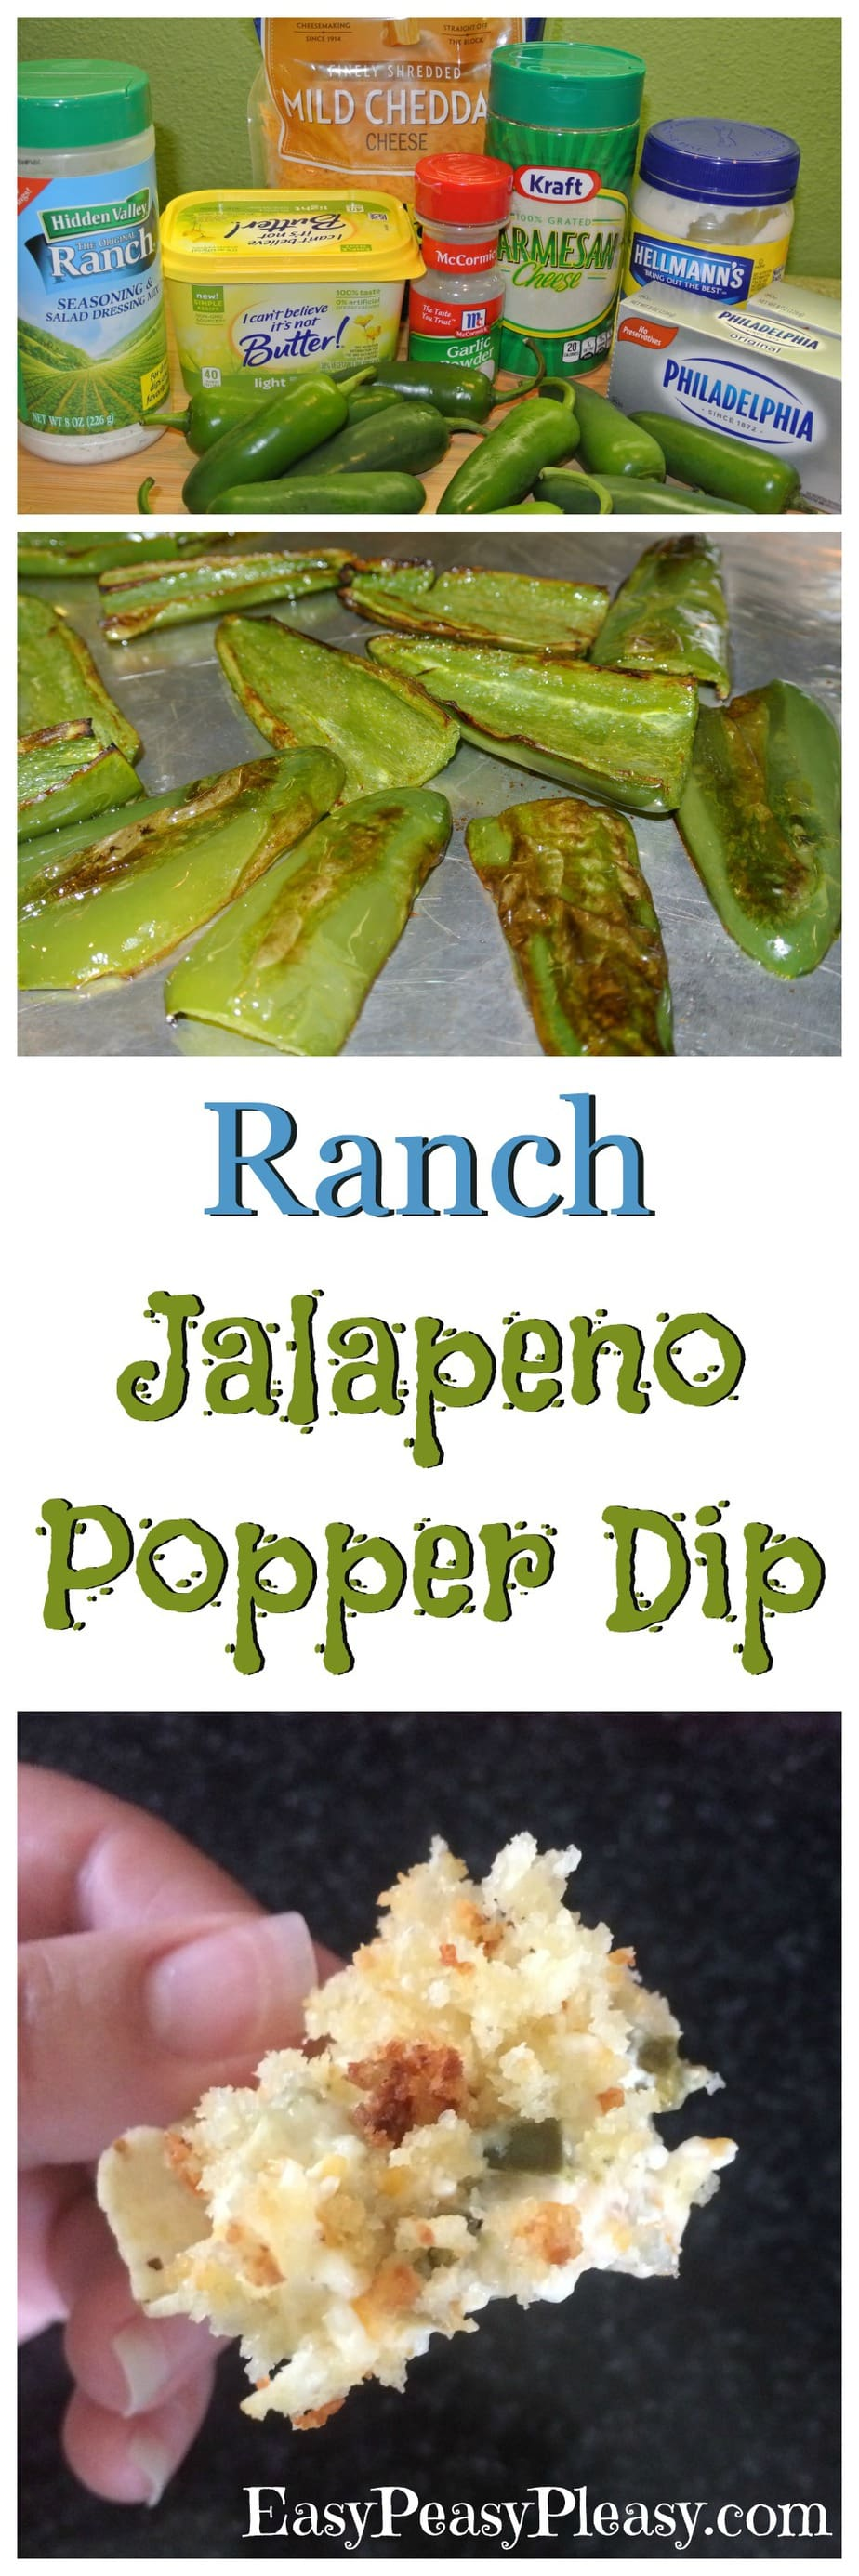 Easier than Jalapeno Poppers Ranch Jalapeno Popper Dip